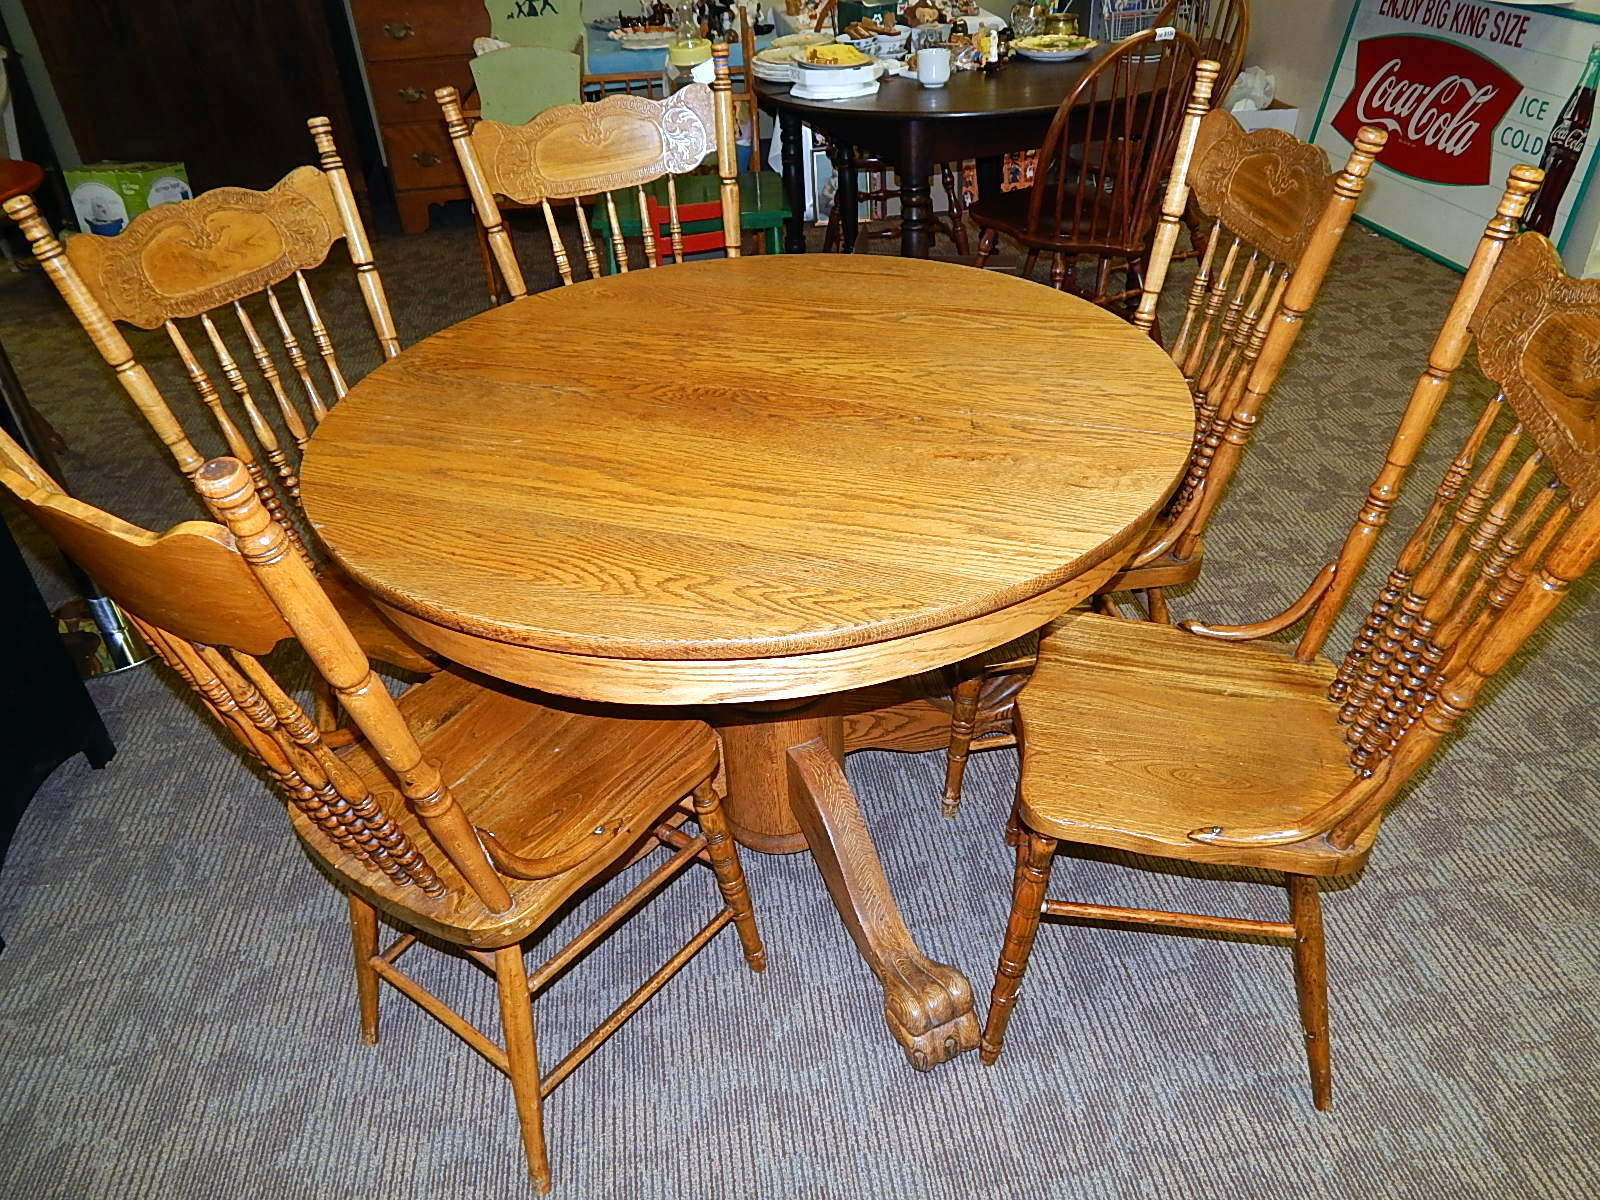 Antique Oak Clawfoot Round Table W Carved Chairs Curiosity Consignment